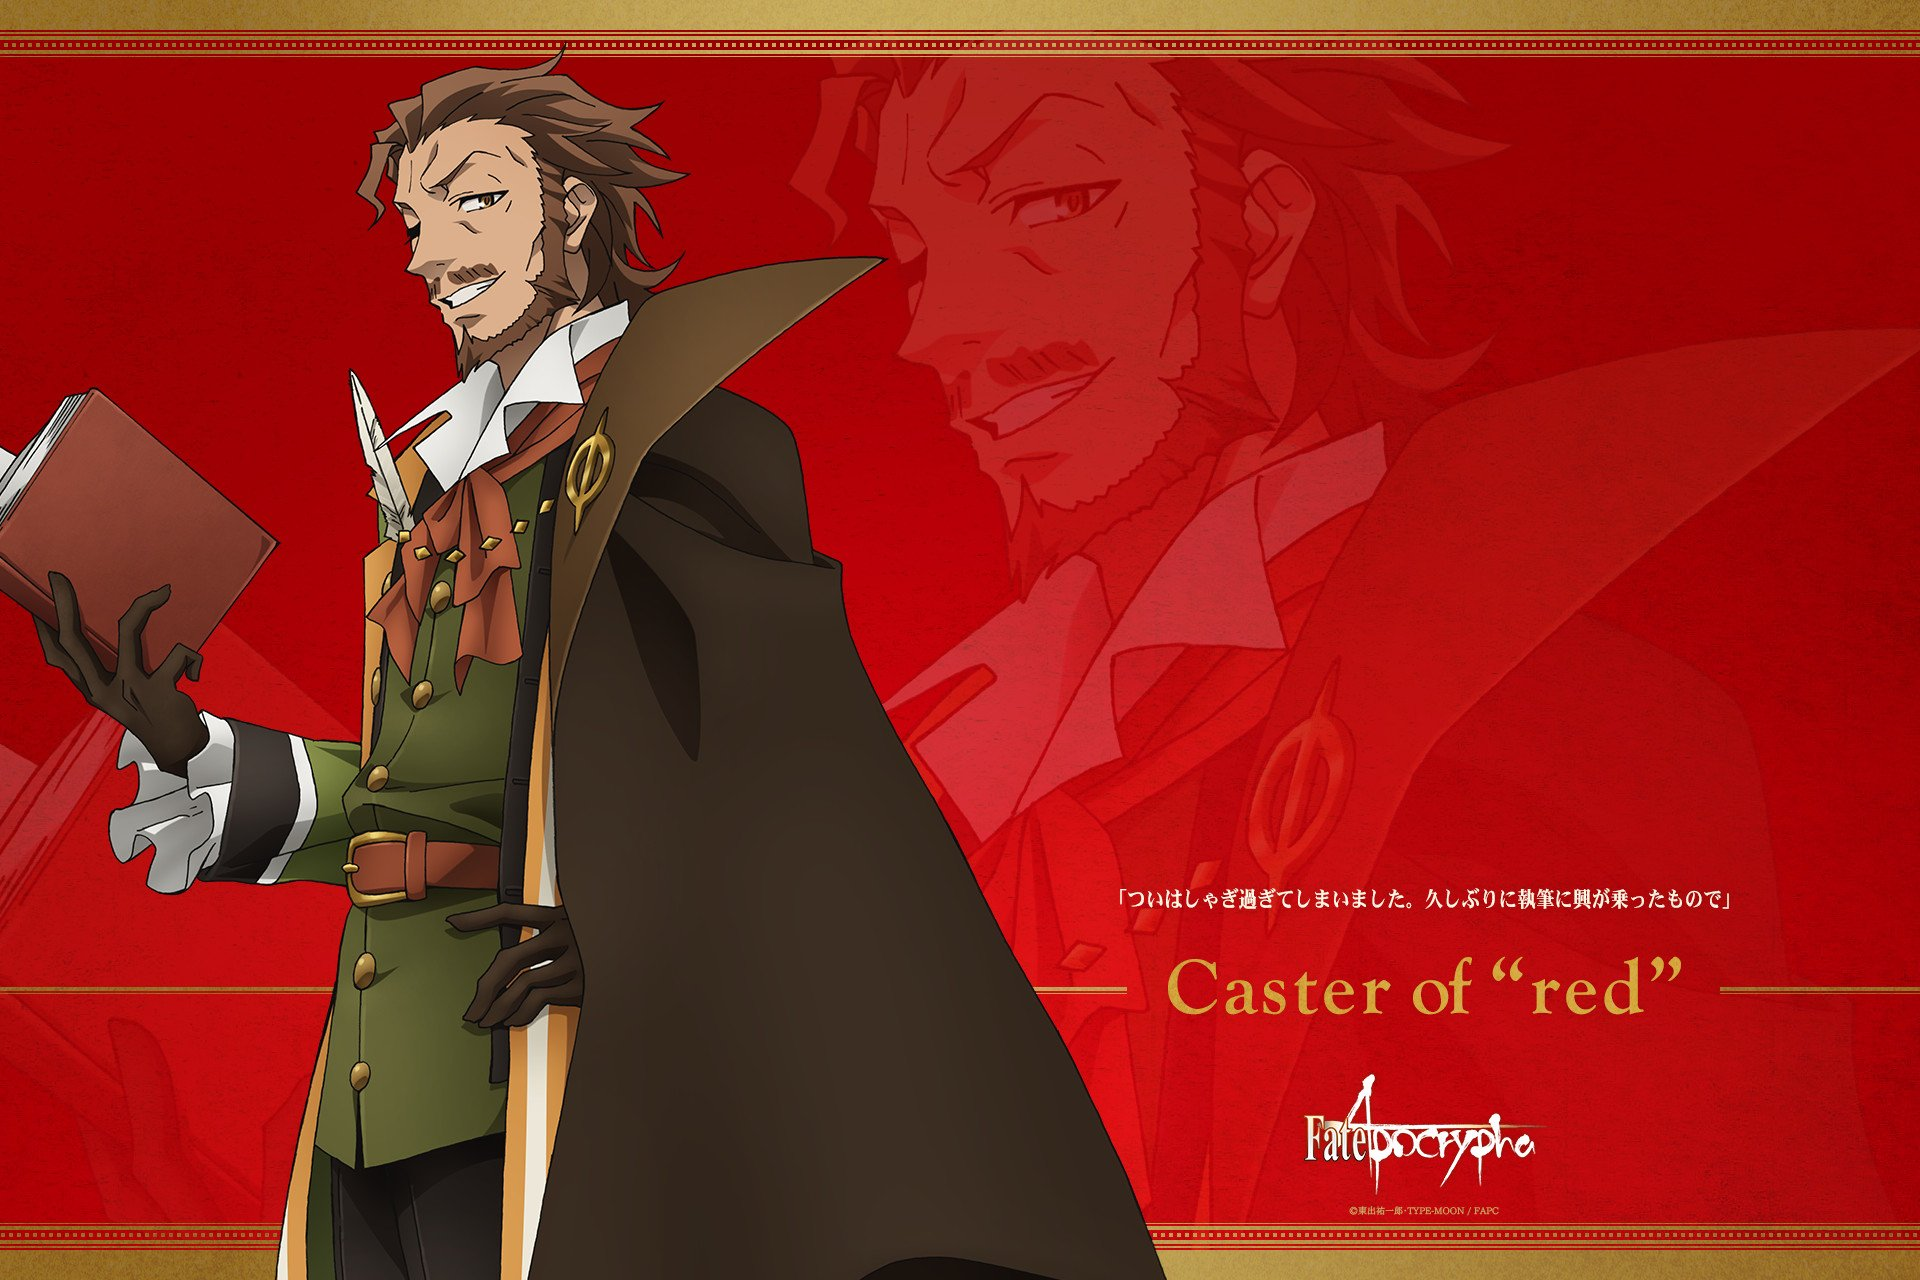 Anime - Fate/Apocrypha Caster of Red (Fate/Apocrypha) Wallpaper